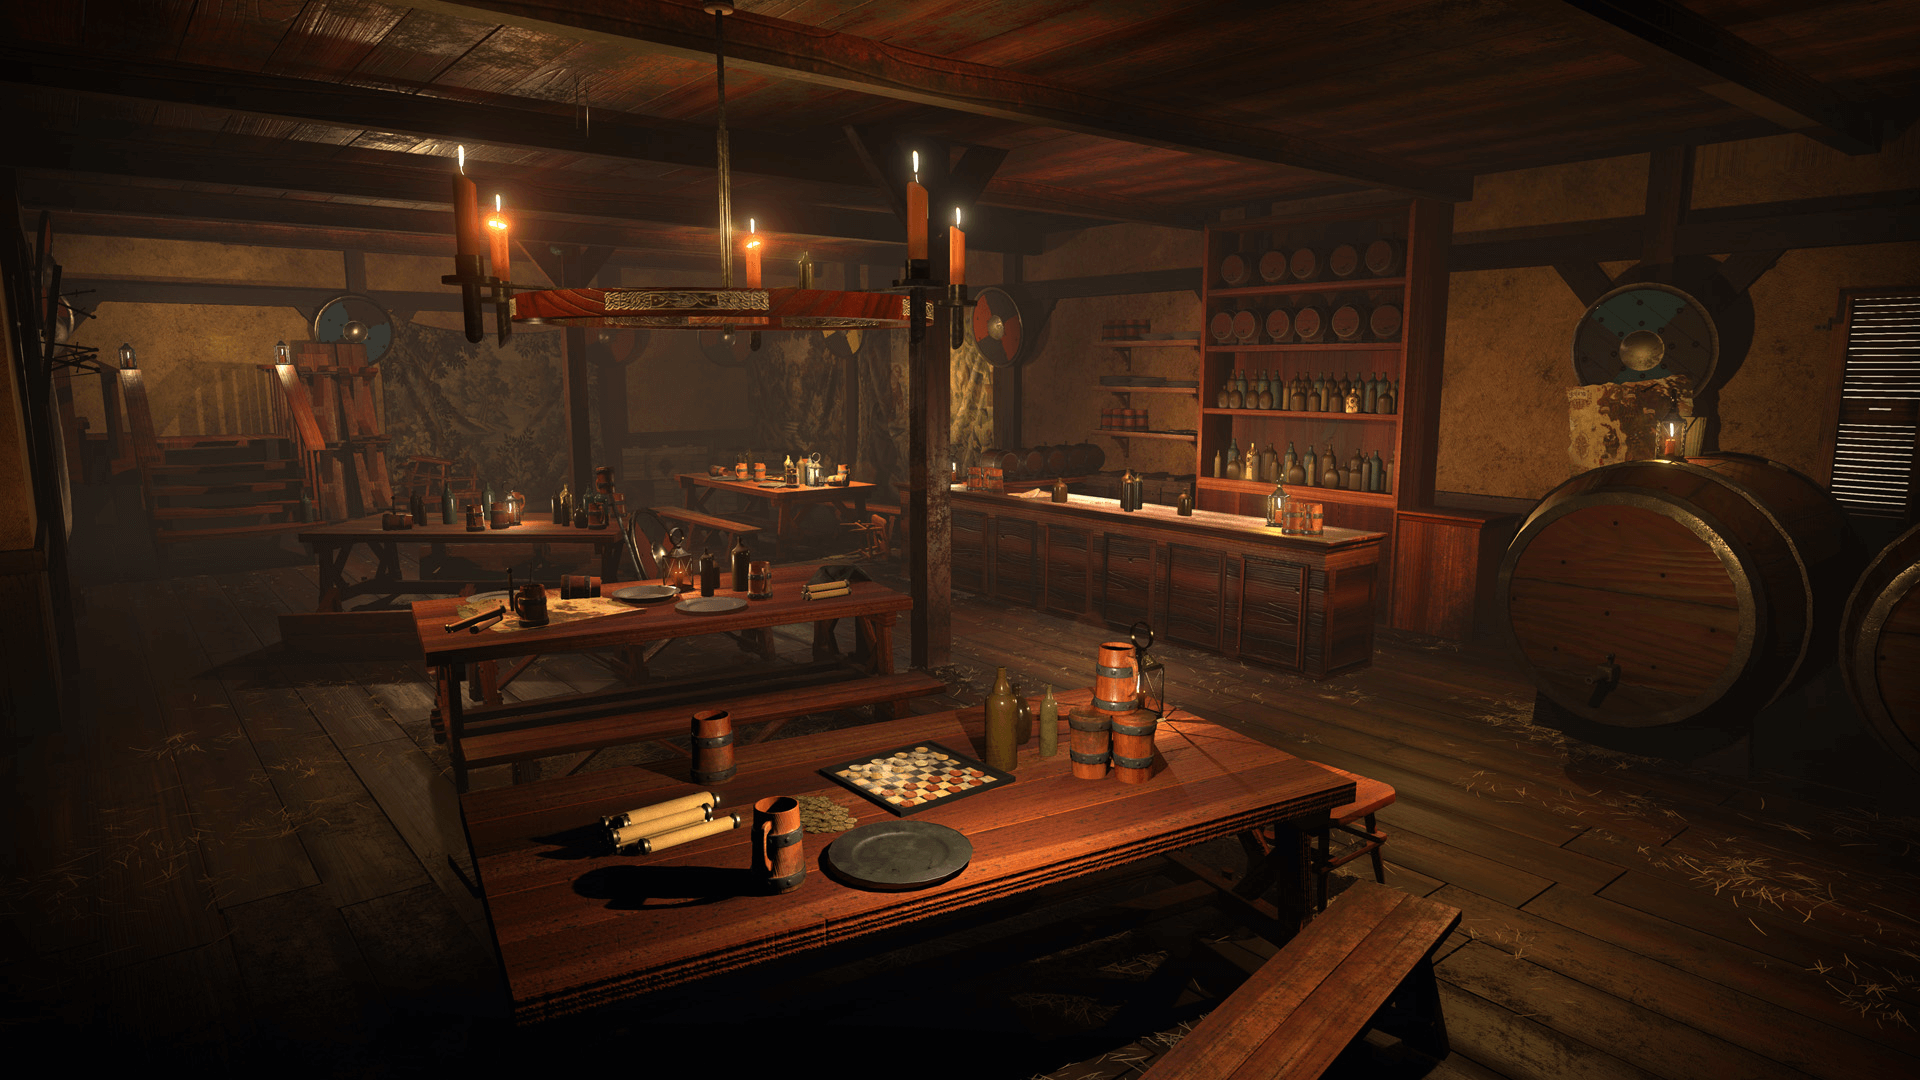 New Home Blueprints Medieval Tavern By Brett Johnson In Environments Ue4